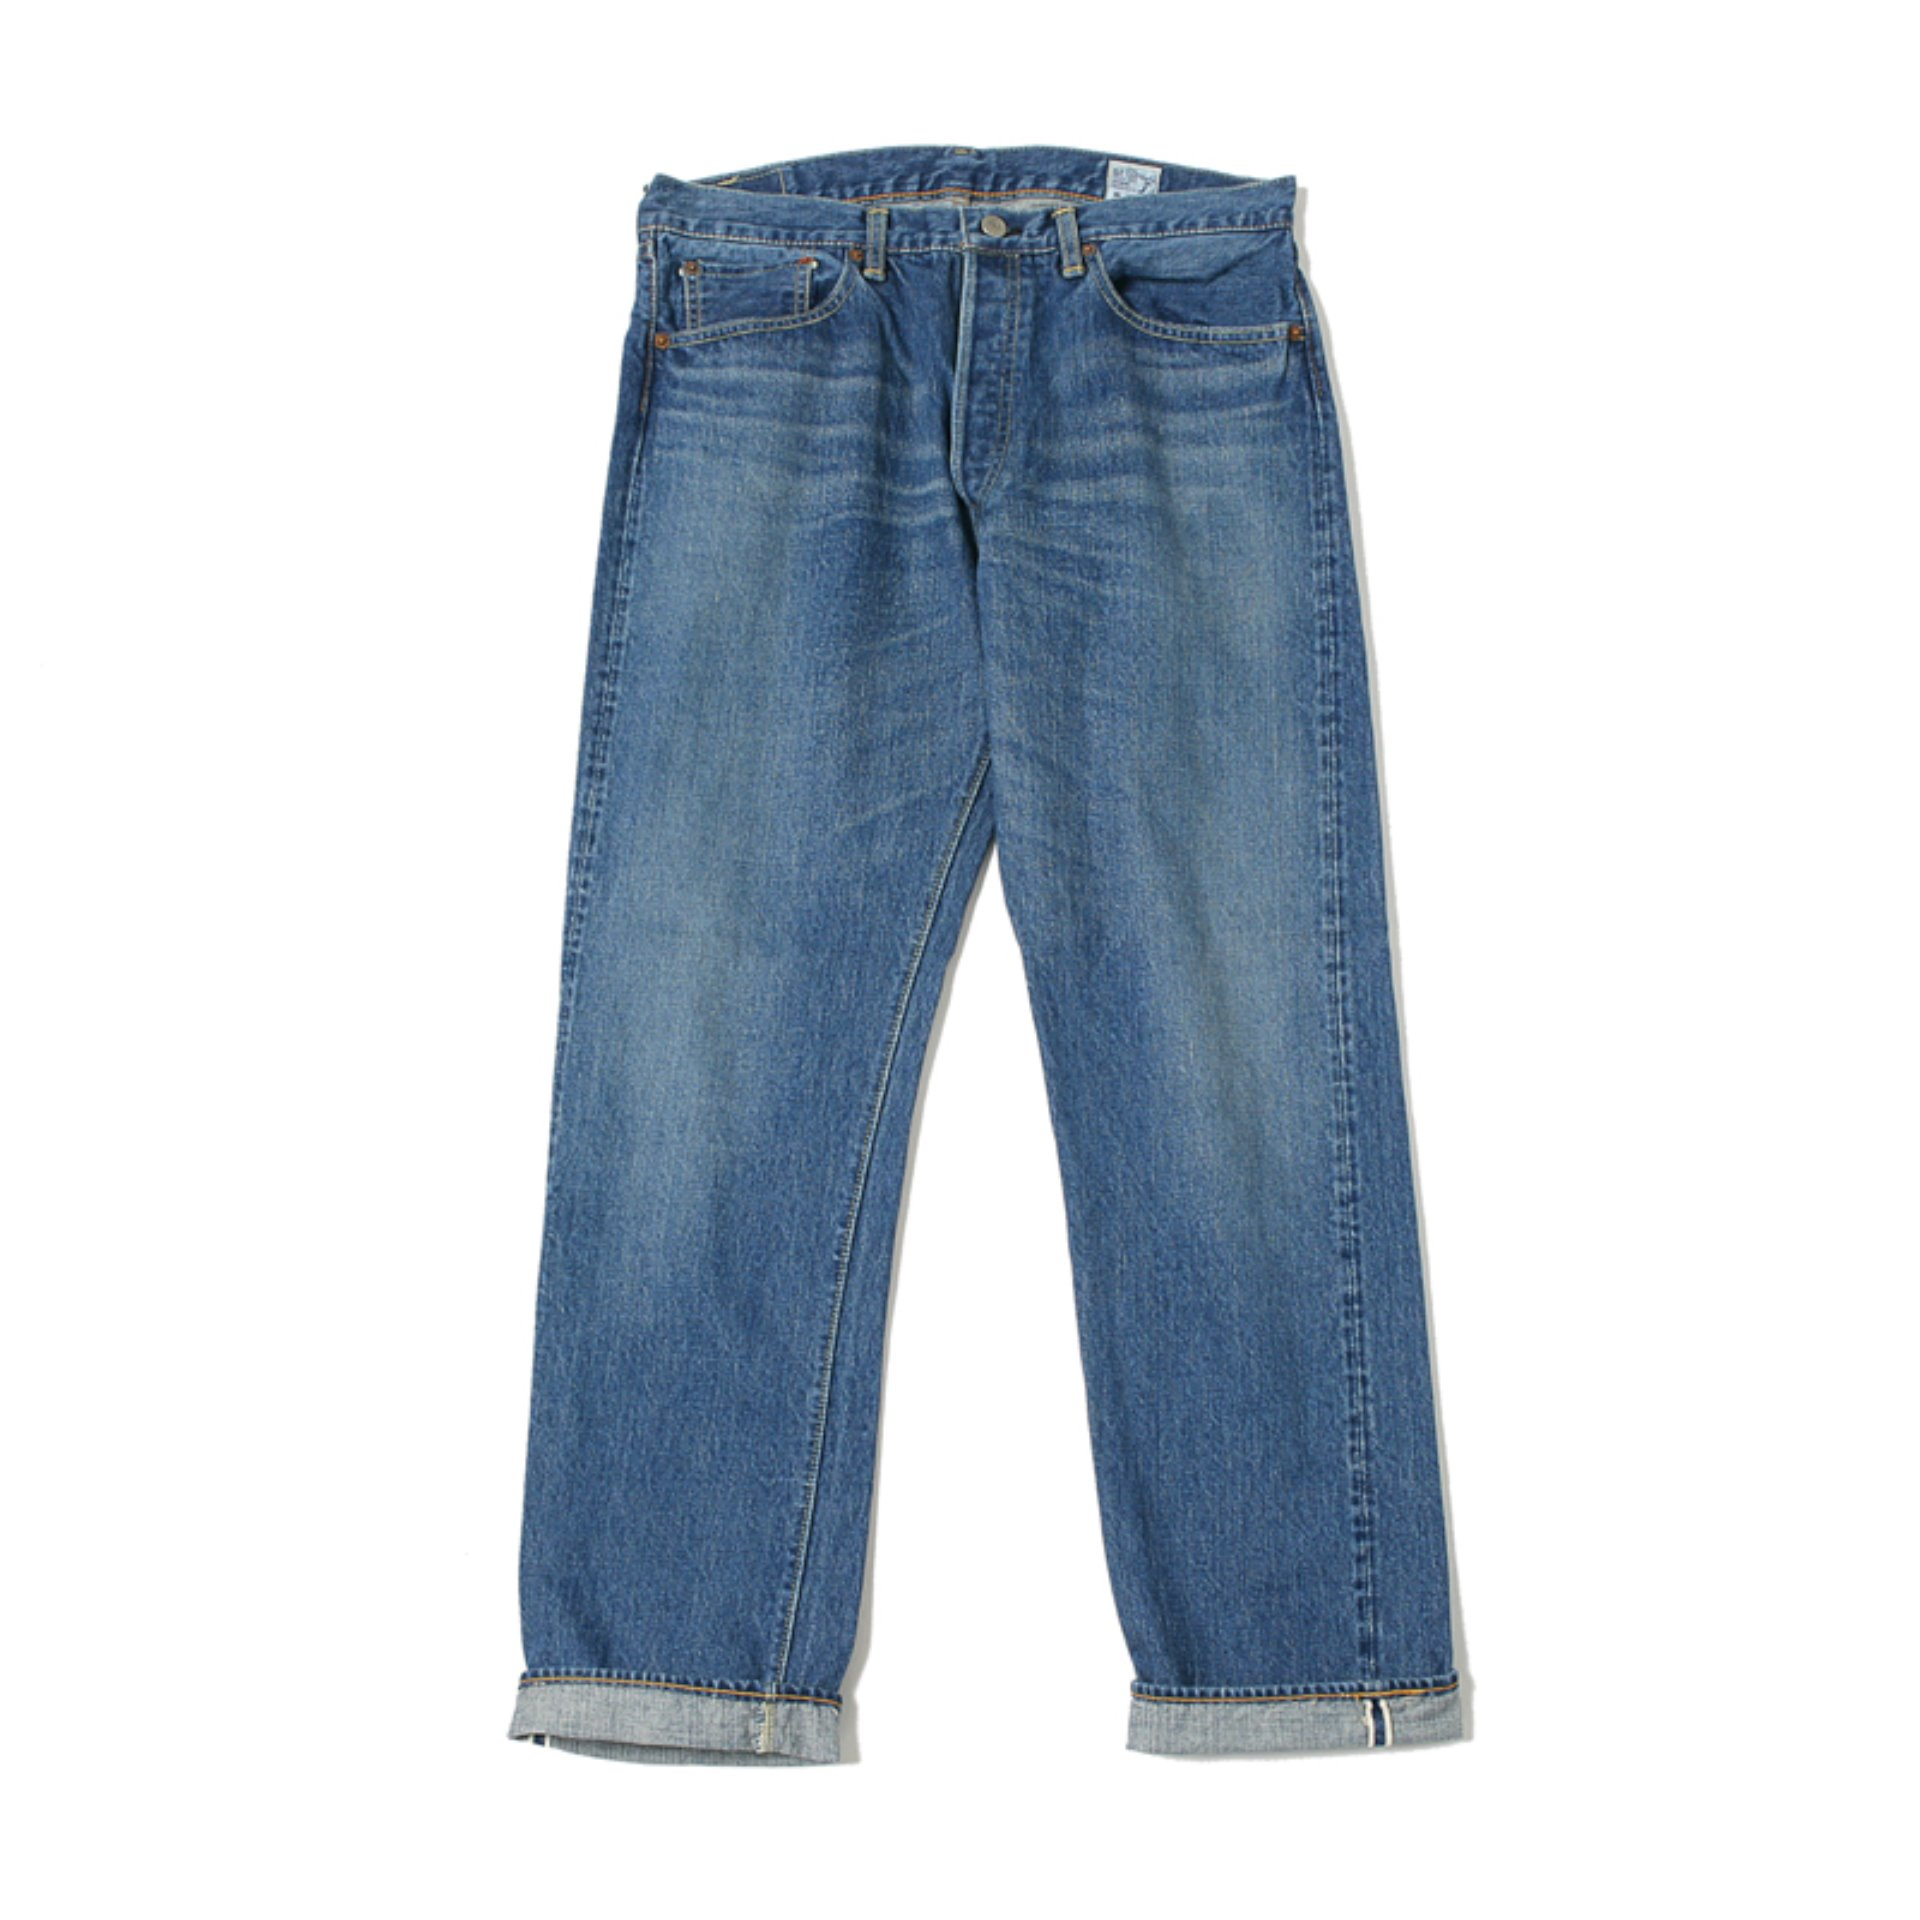 (Restock)ORSLOW 105W SELVEDGE(2YEARS WASHED)